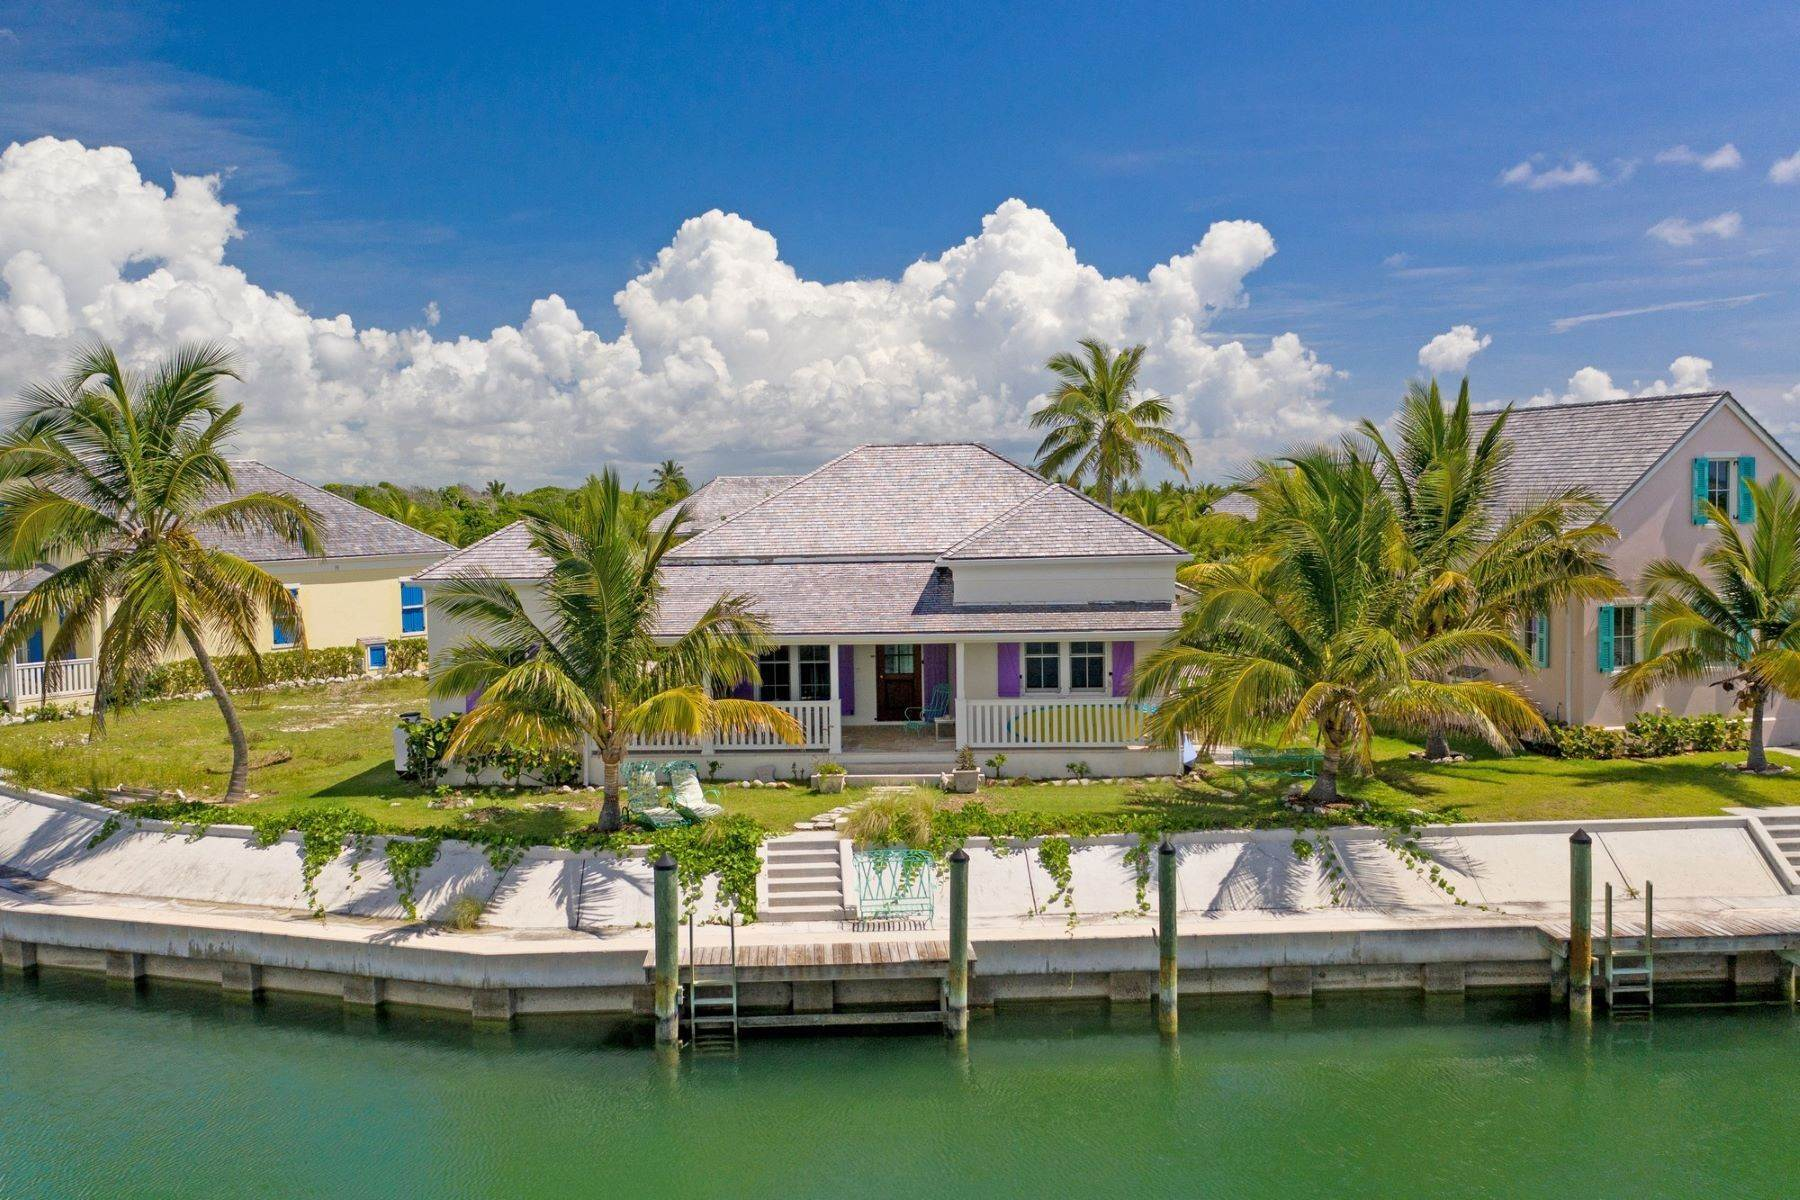 Single Family Homes for Sale at Schooner Bay, Abaco Bahamas